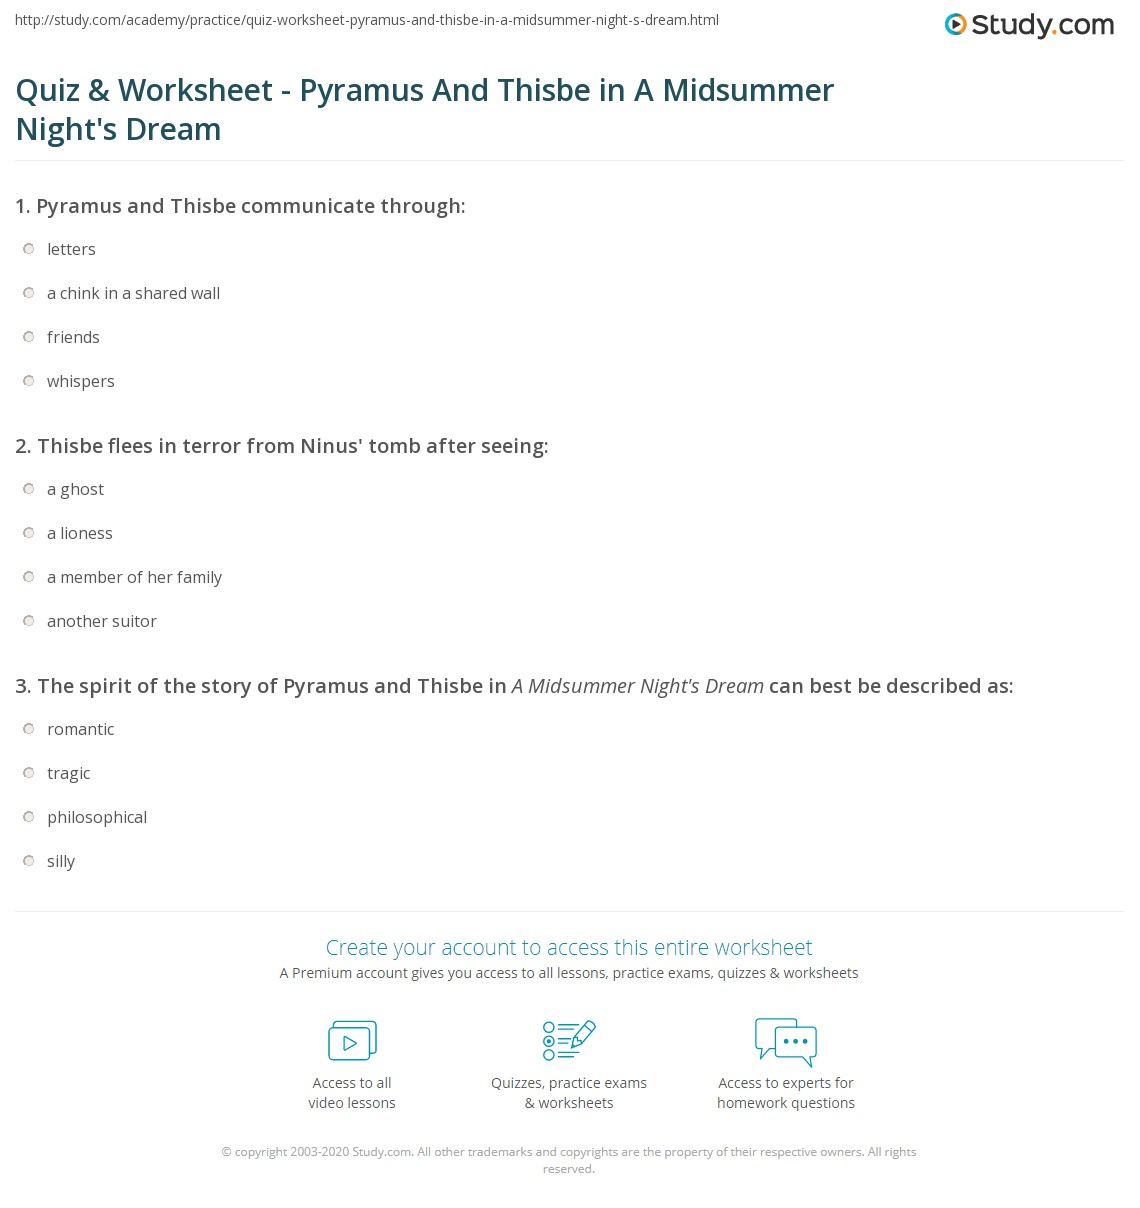 Quiz & Worksheet - Pyramus And Thisbe in A Midsummer Night\'s Dream ...